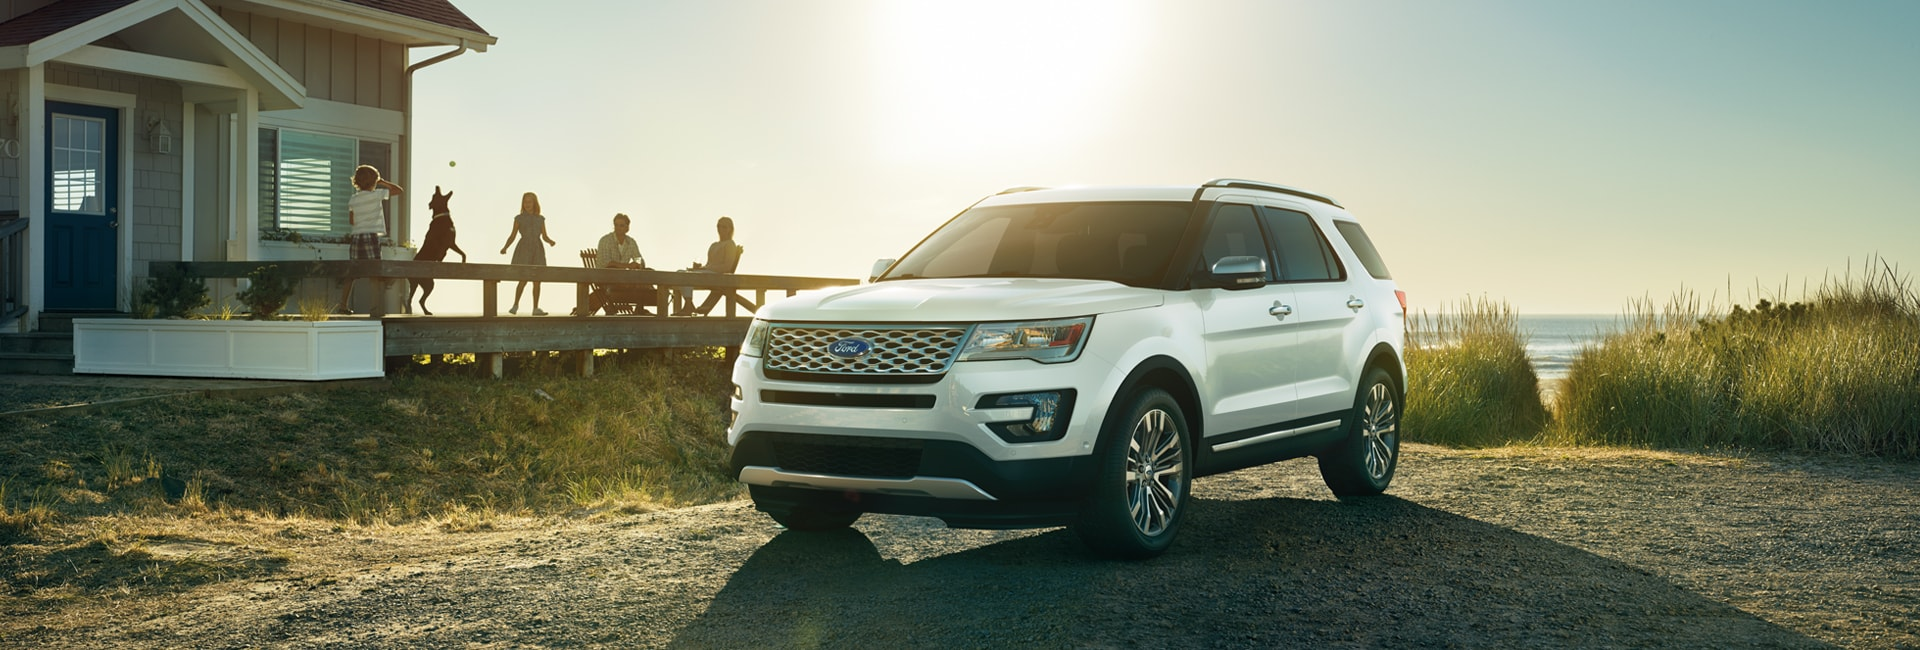 Ford Explorer Exterior Vehicle Features